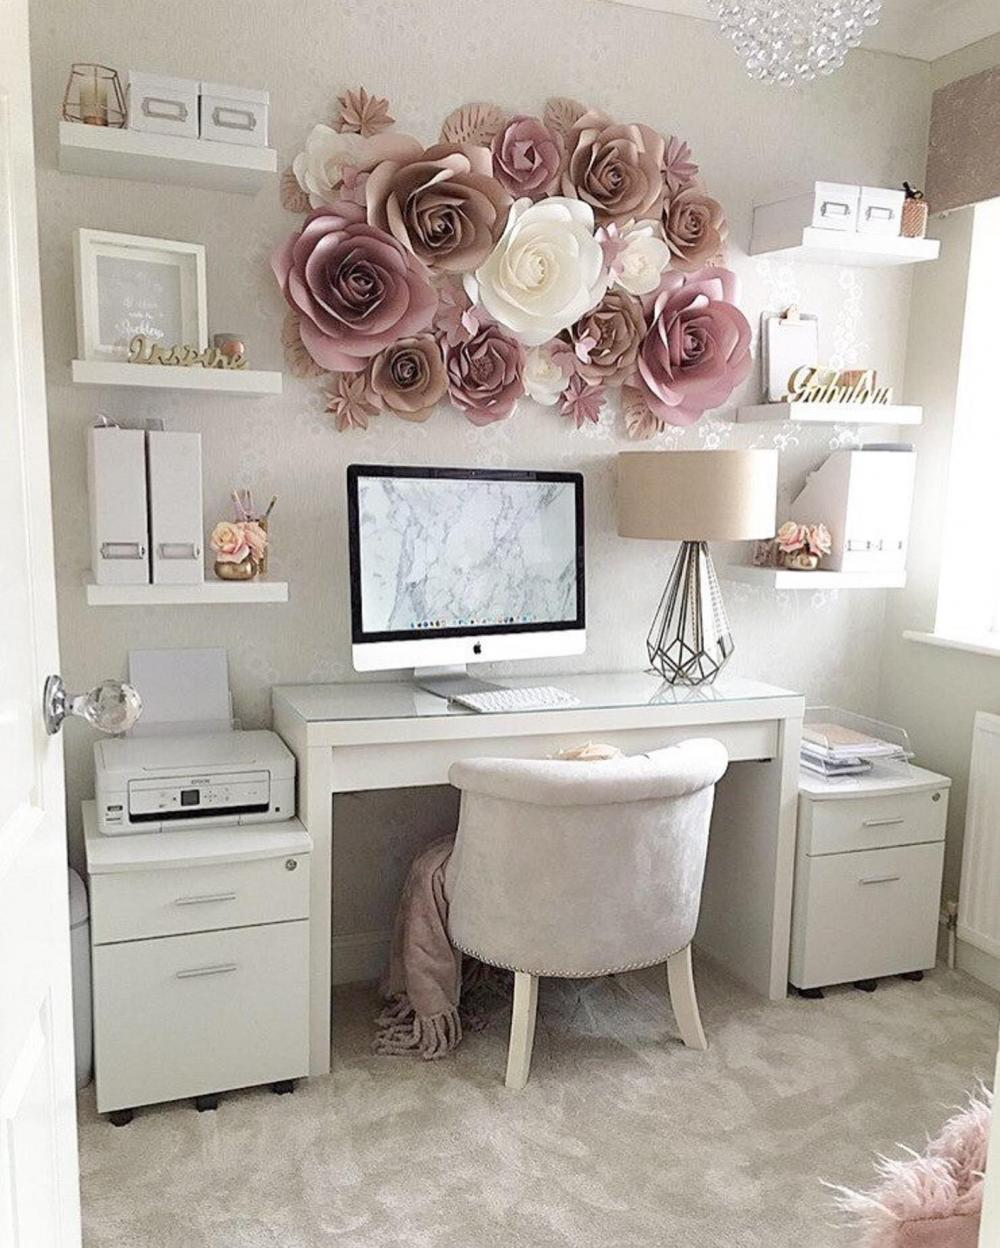 Decorating is everything when organising your home office